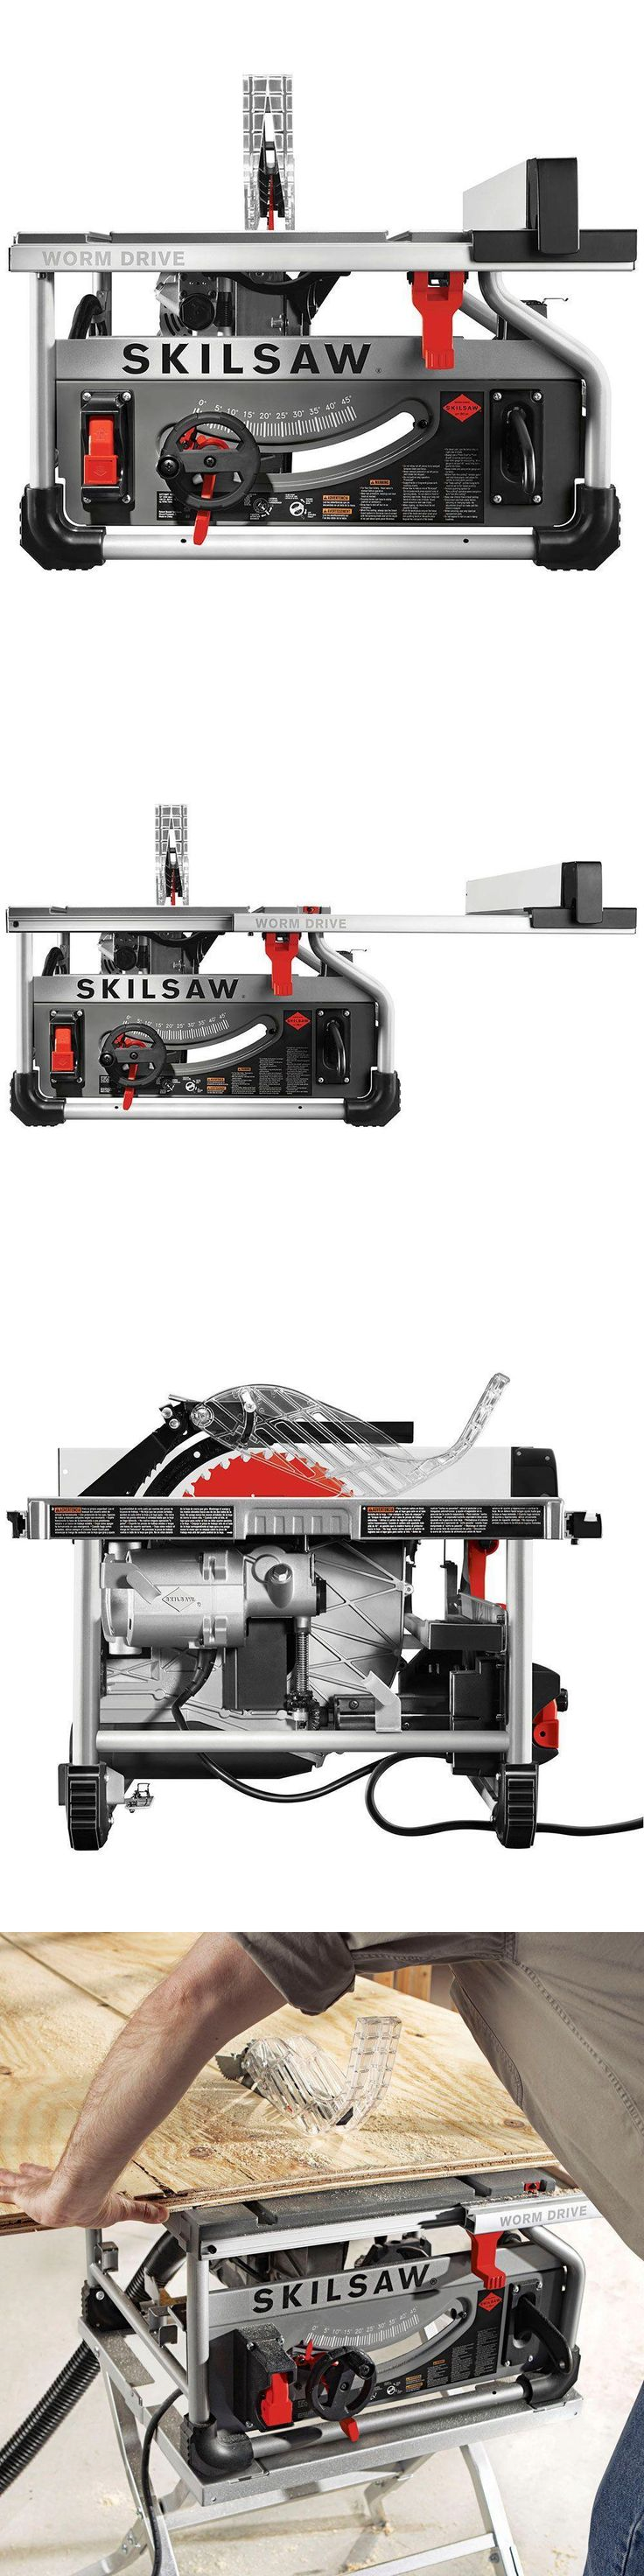 Corded Circular Saws 20785: Skilsaw Spt70wt-22 10-Inch 15-Amp Worm Drive Table Saw Diablo Blade -> BUY IT NOW ONLY: $344.99 on eBay!